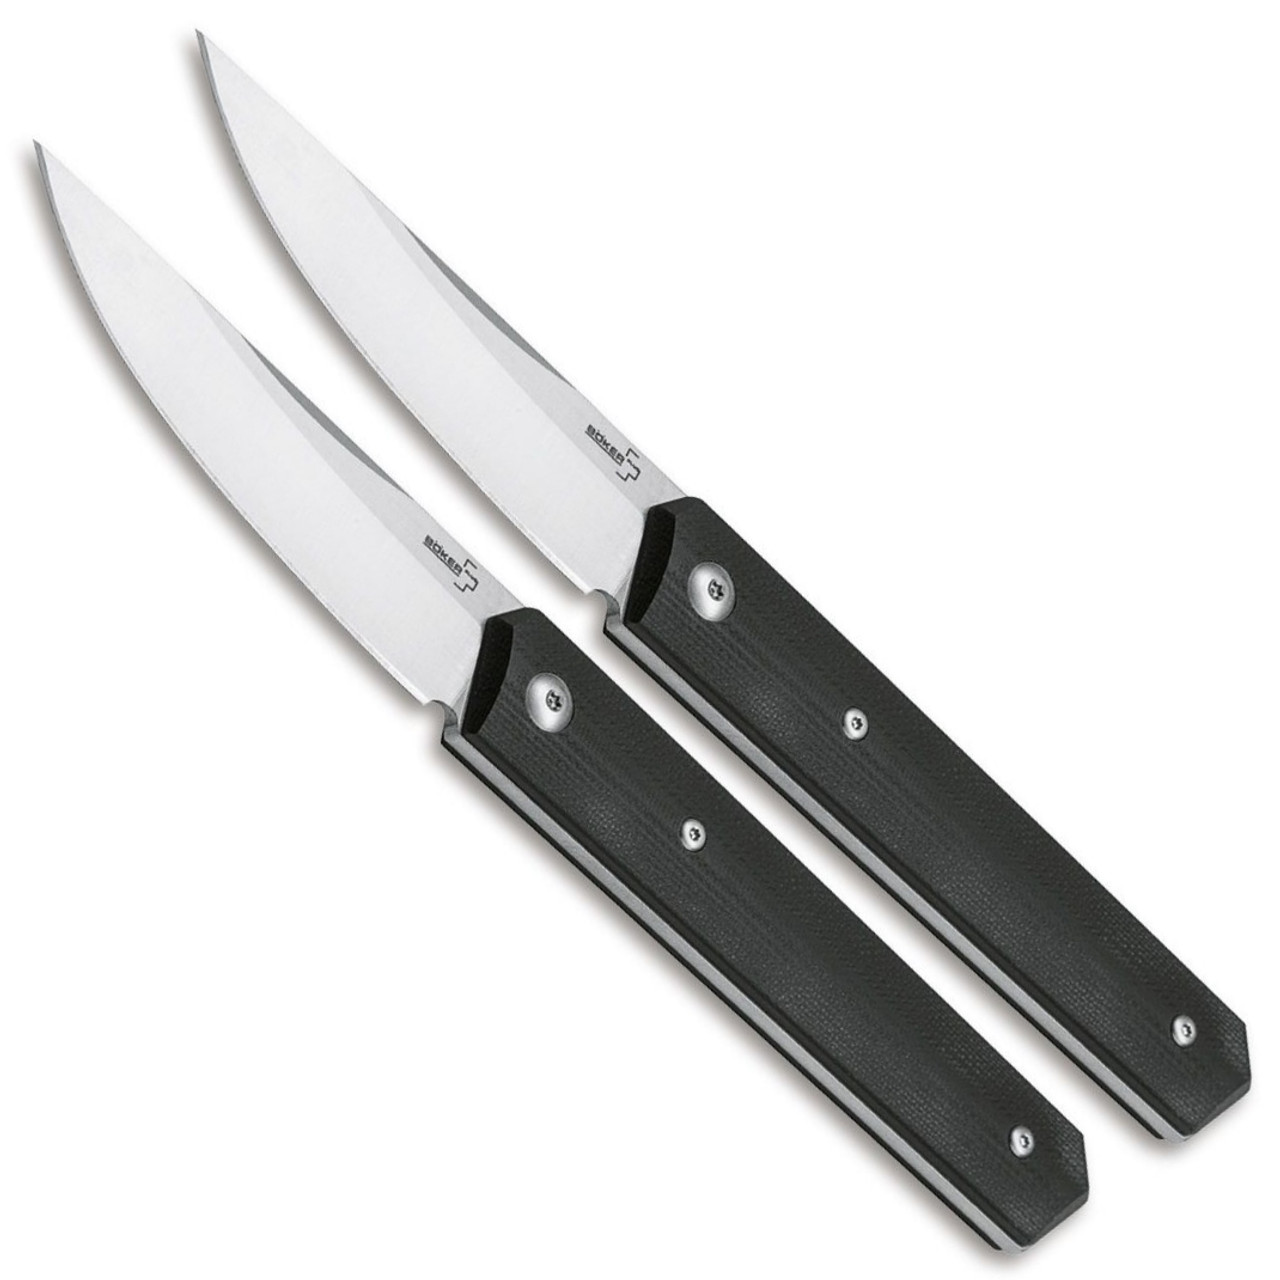 Boker Plus Kwaiken Steak Knife Set, Satin Blades FRONT VIEW